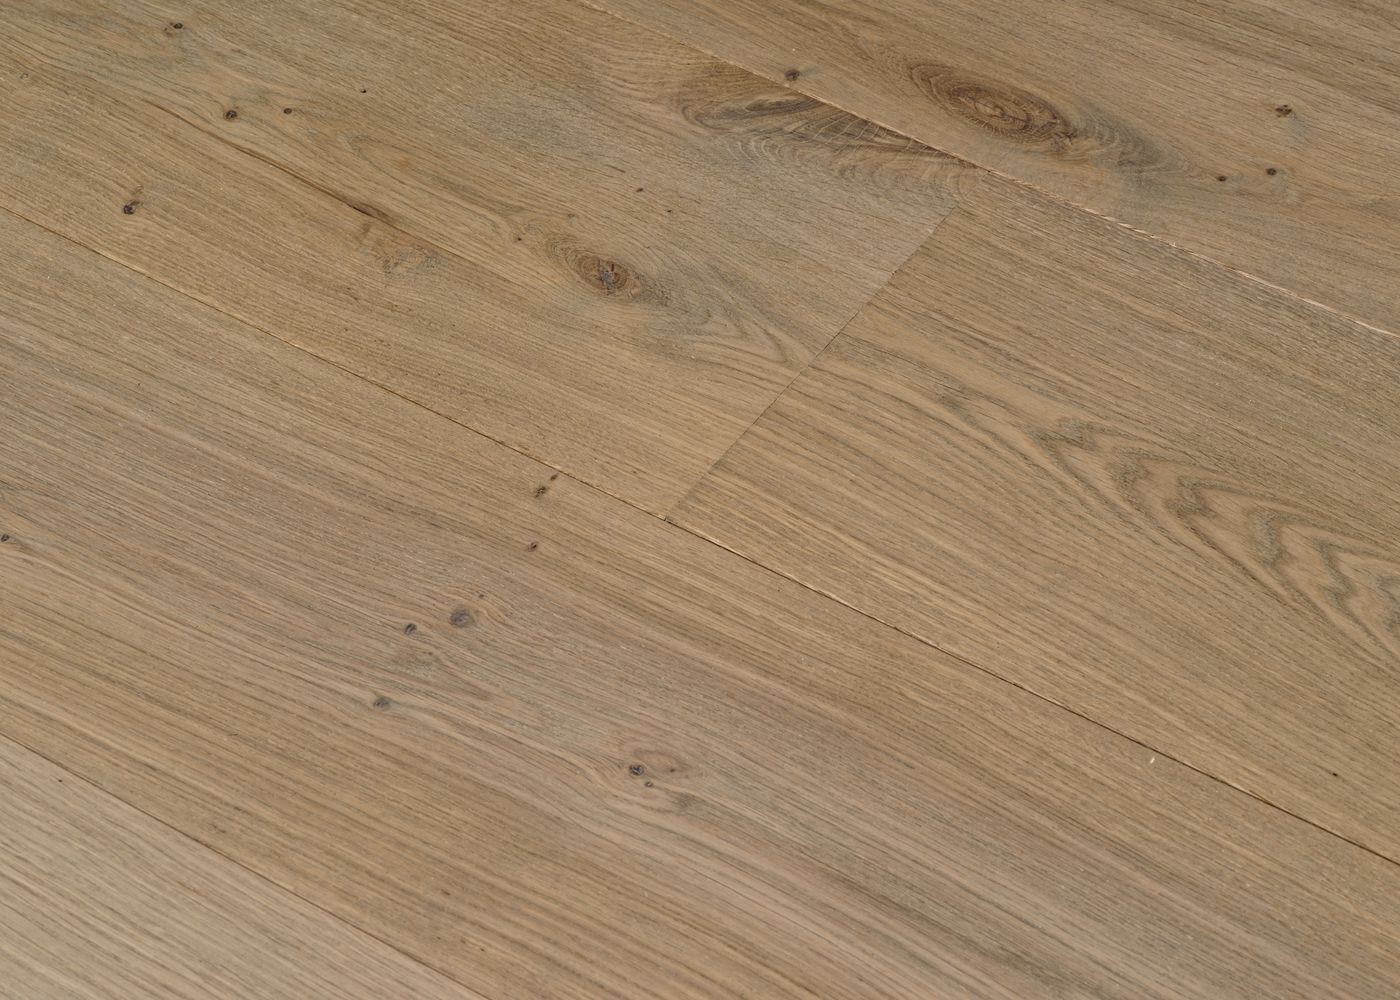 Parquet chêne massif TAUPE noeuds ouverts Matière noeuds ouverts huile cire 20x160/180/200x400-2400